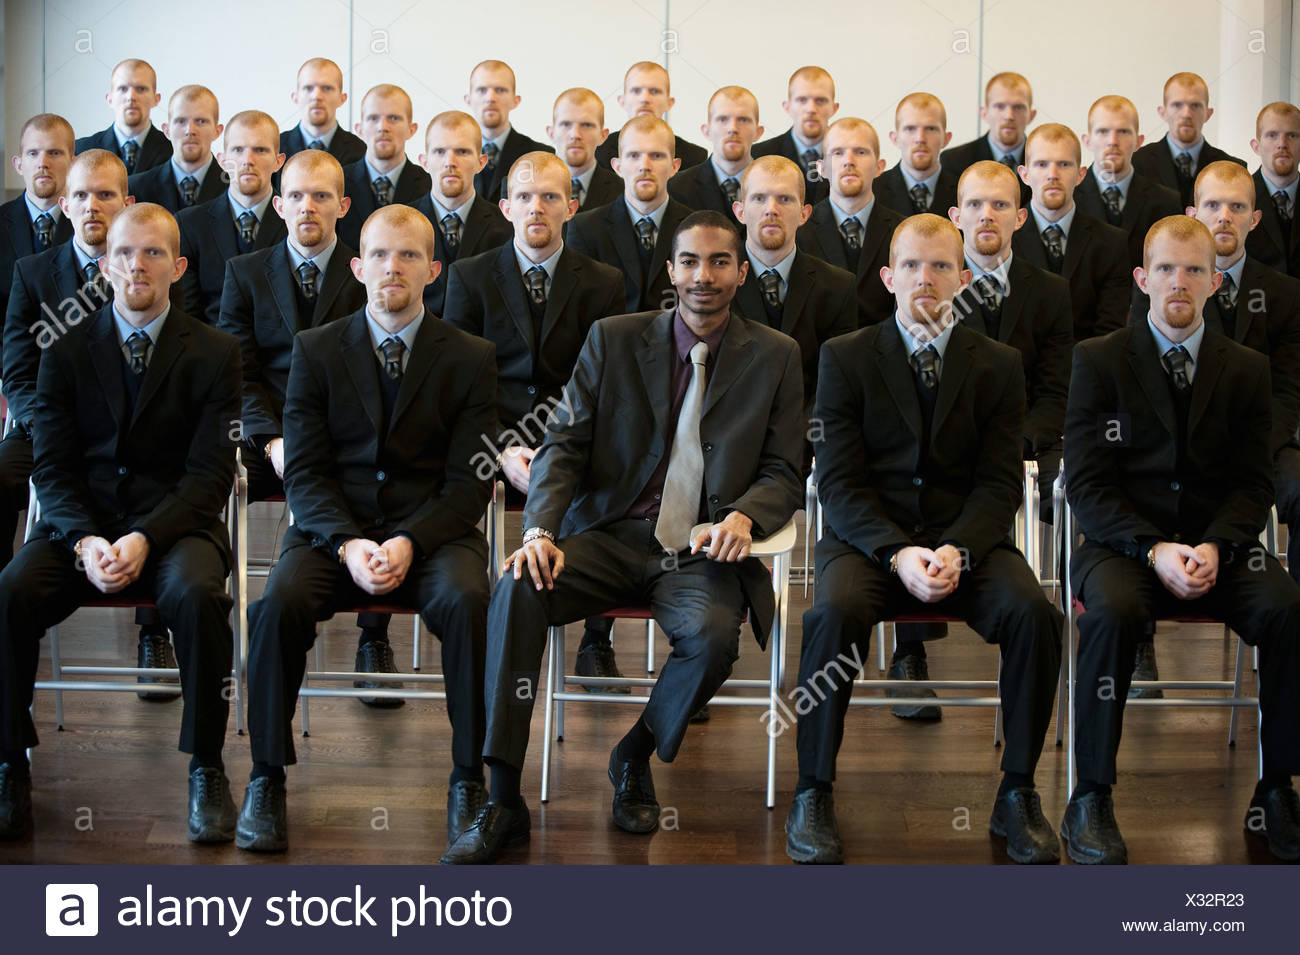 1 black businessman with 25 white clones Stock Photo